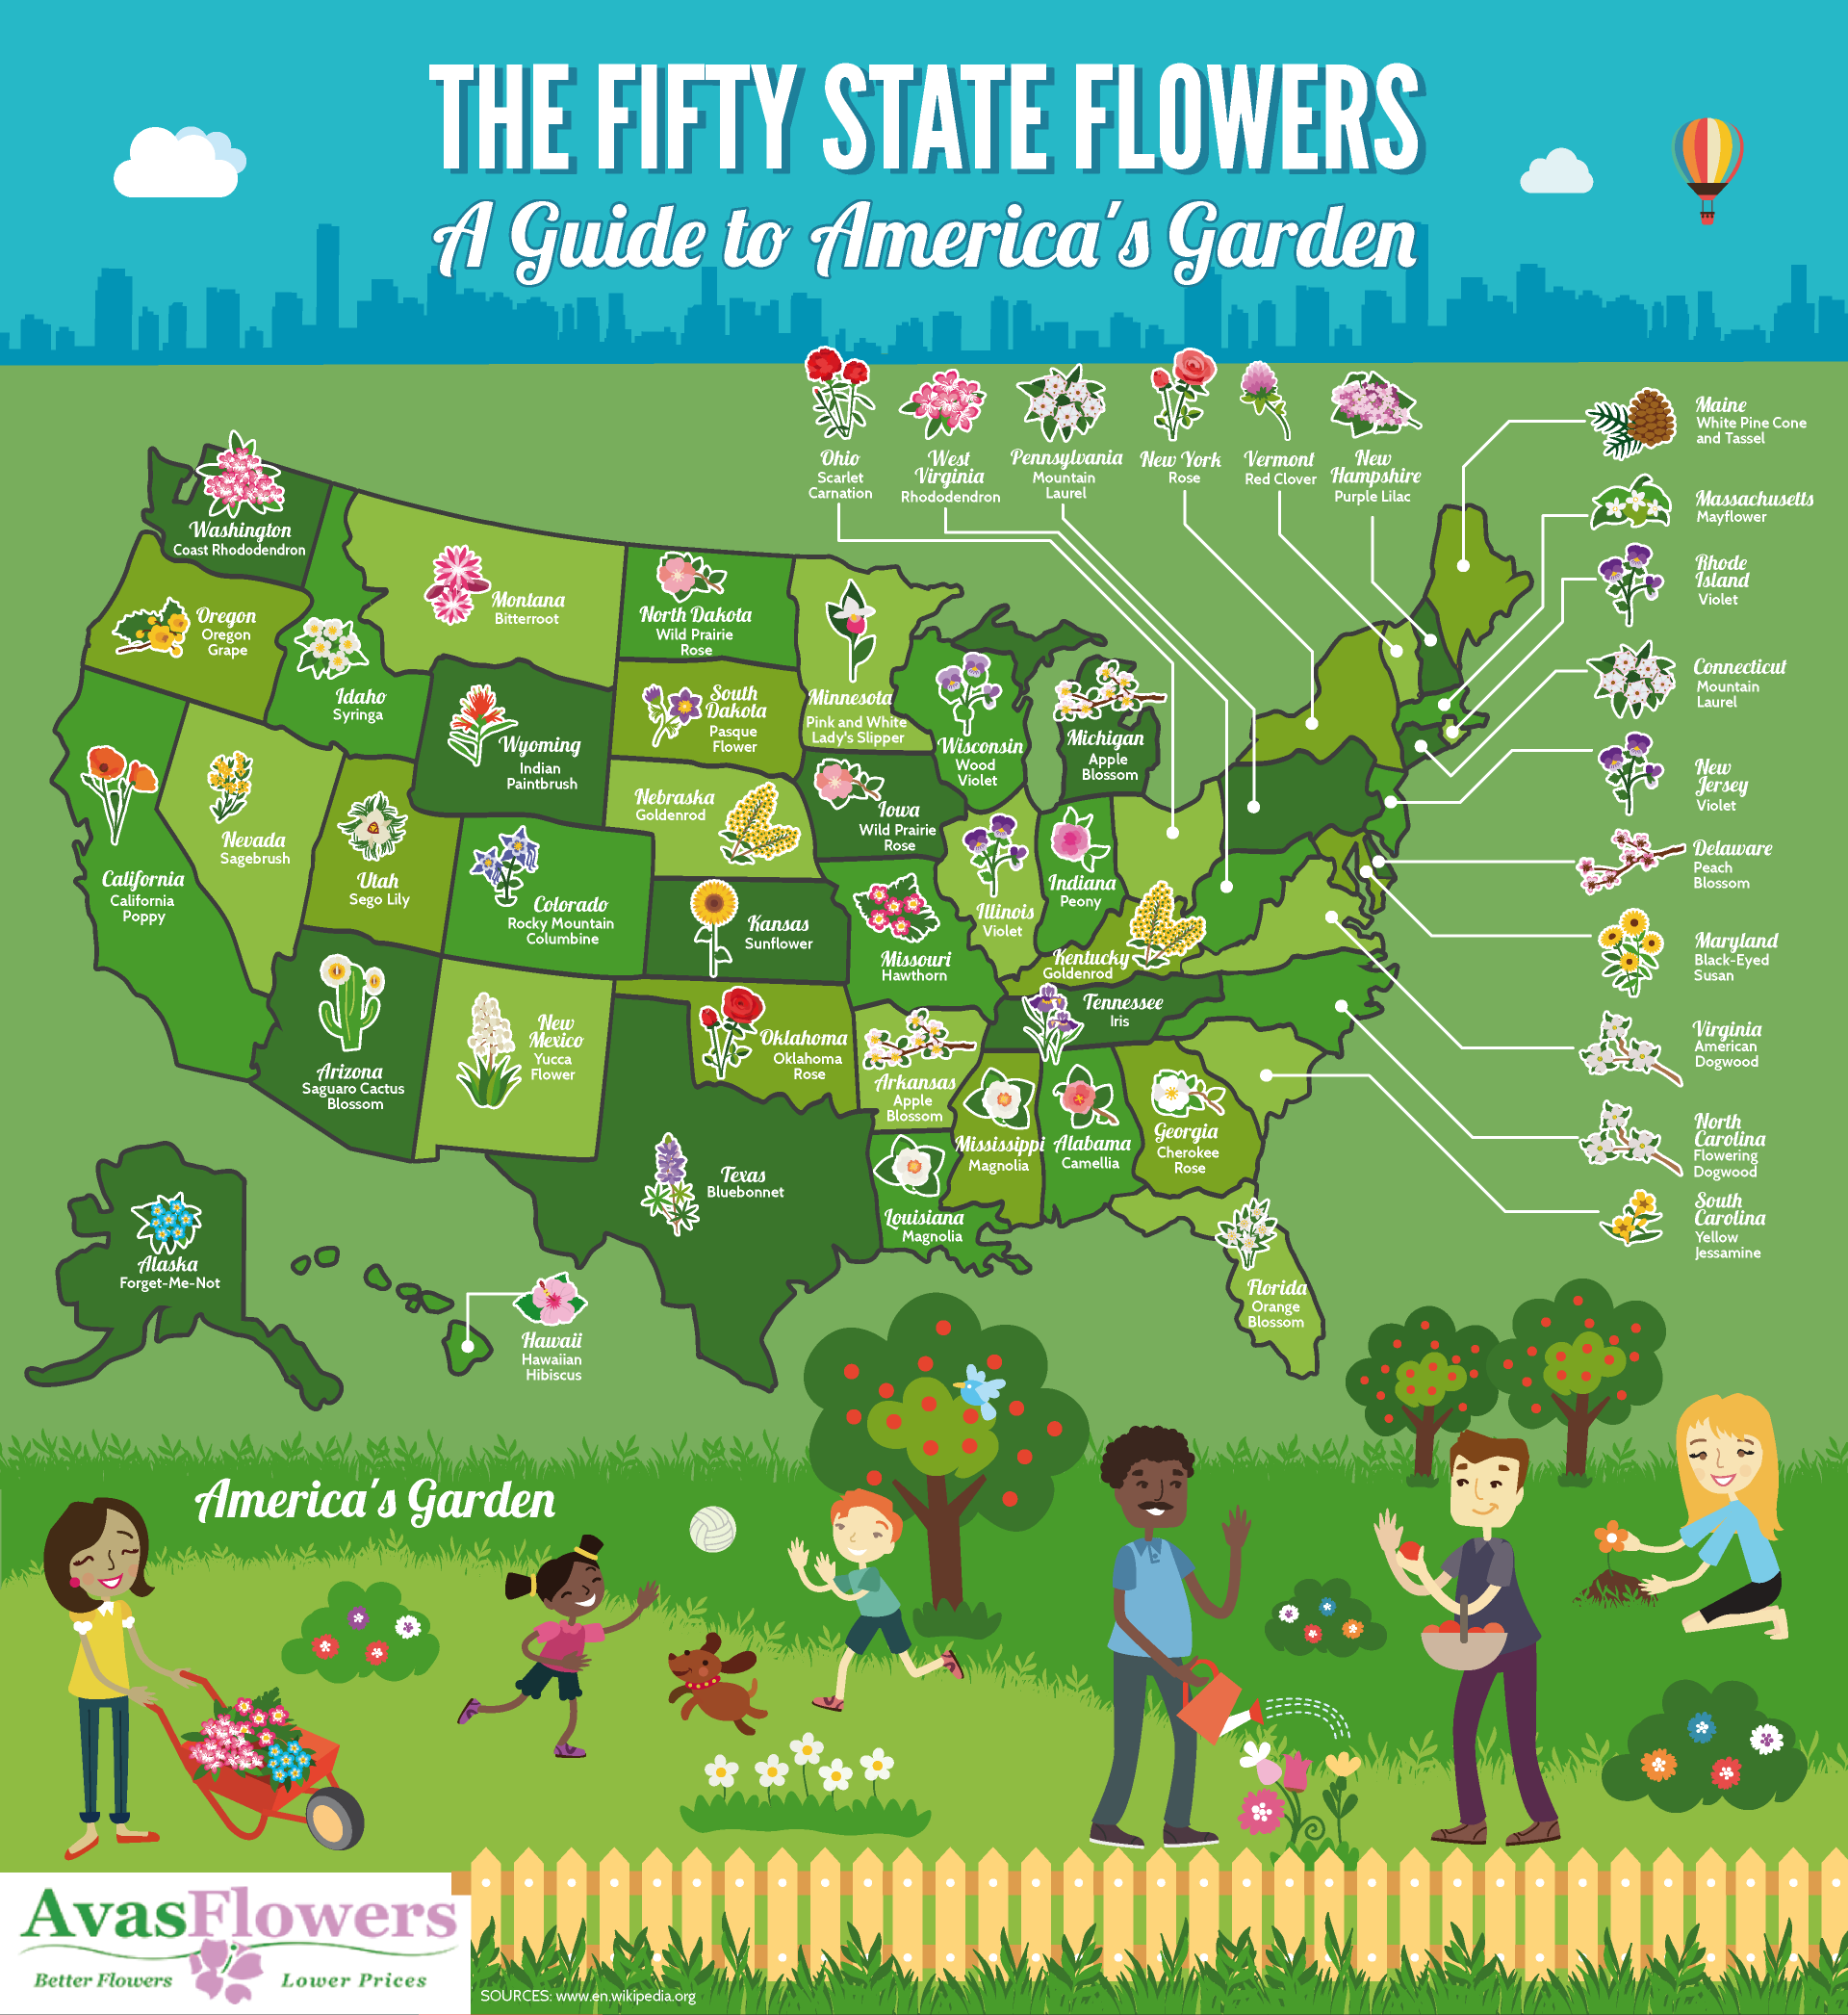 The Fifty State Flowers: A Guide to America's Garden